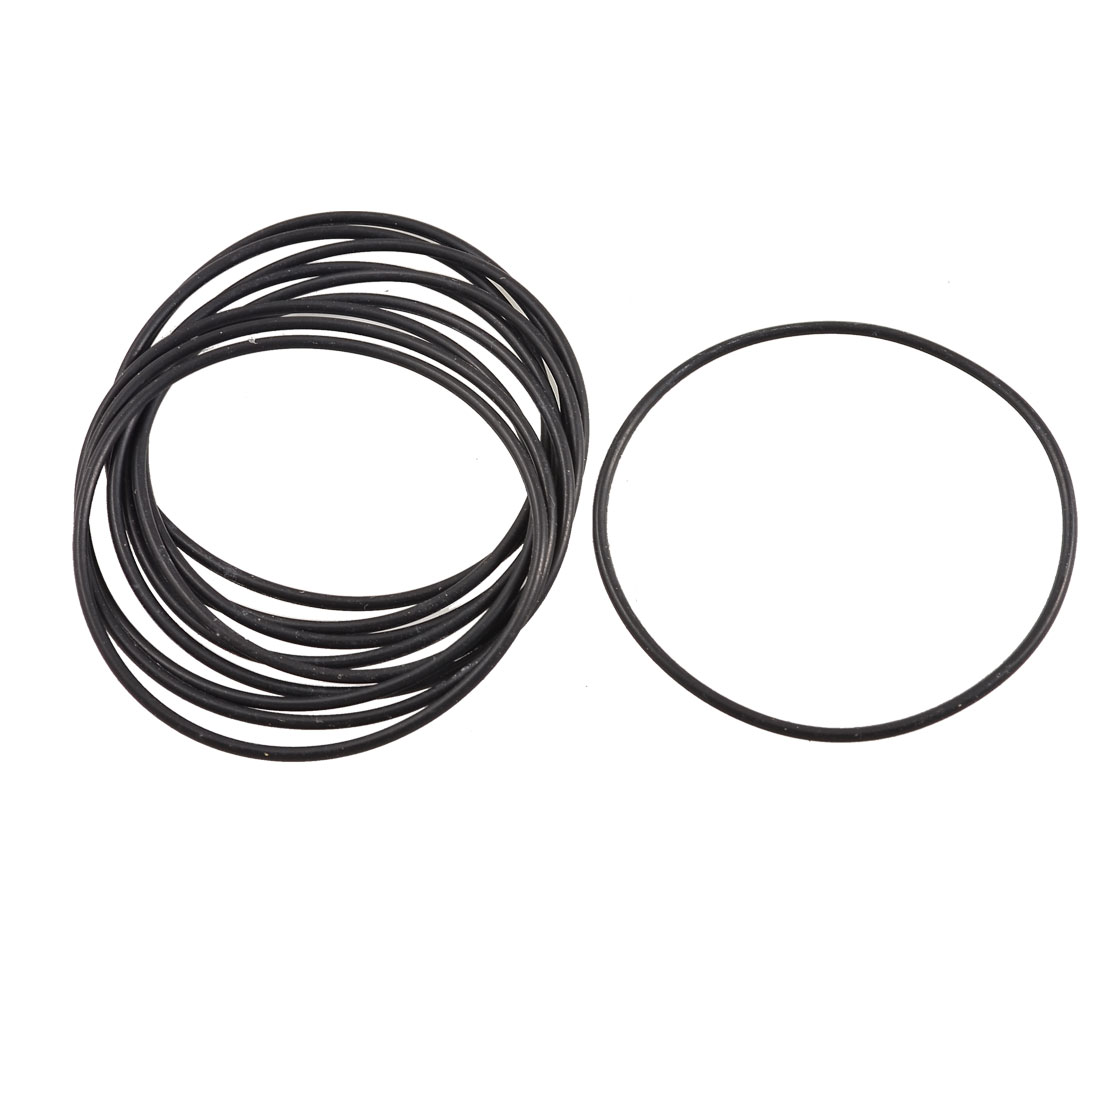 10 Pcs 53mm x 1.8mm Circular Rubber Oil Sealing O Ring Gaskets Black